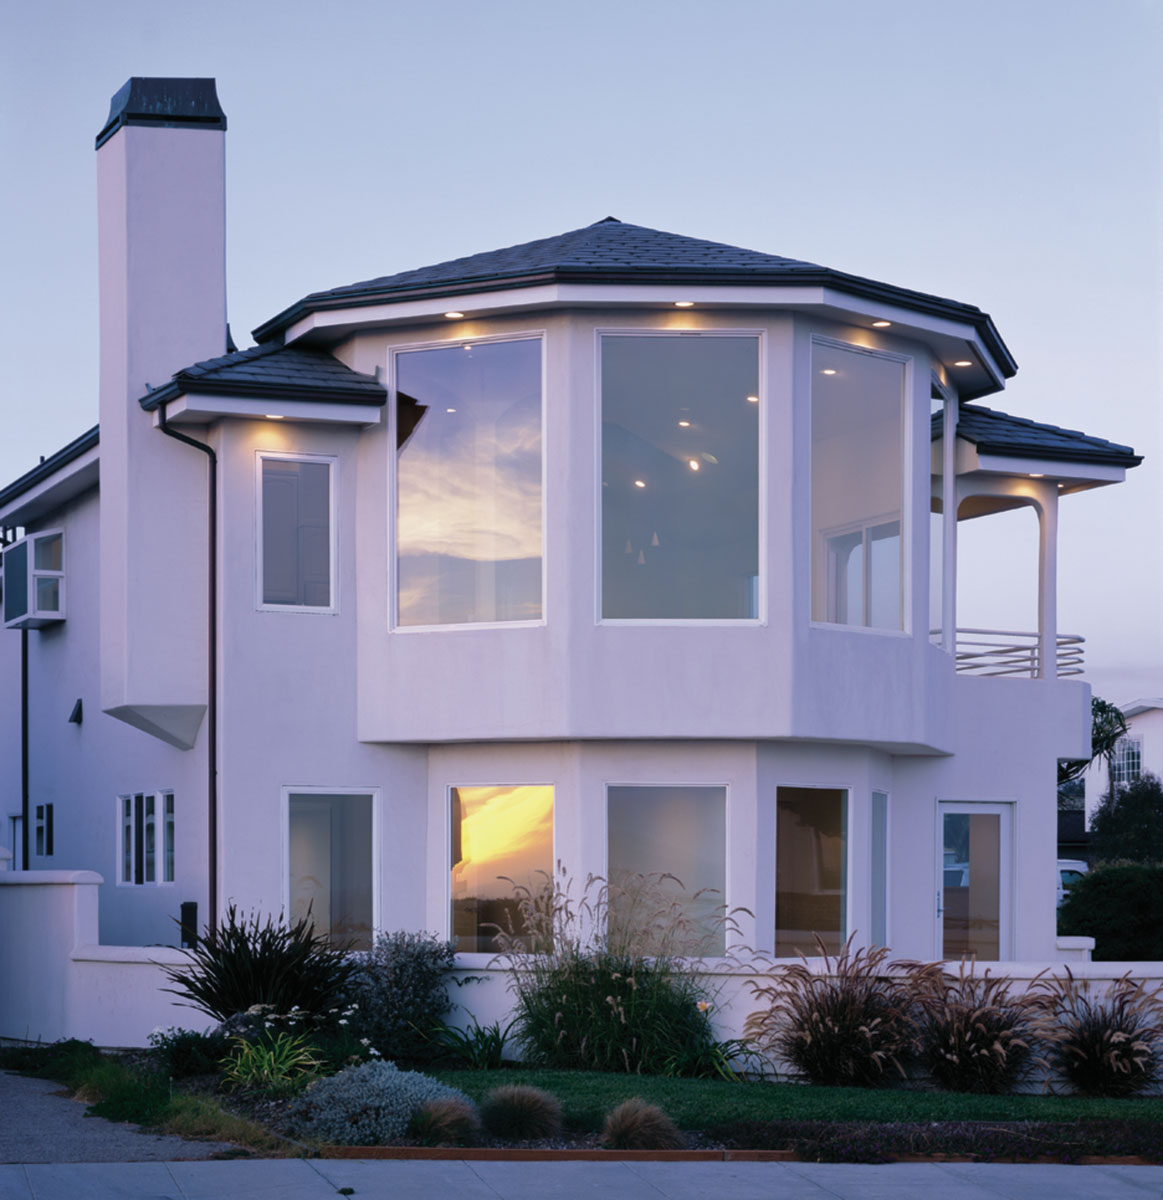 New home designs latest. Beautiful modern homes designs exterior.